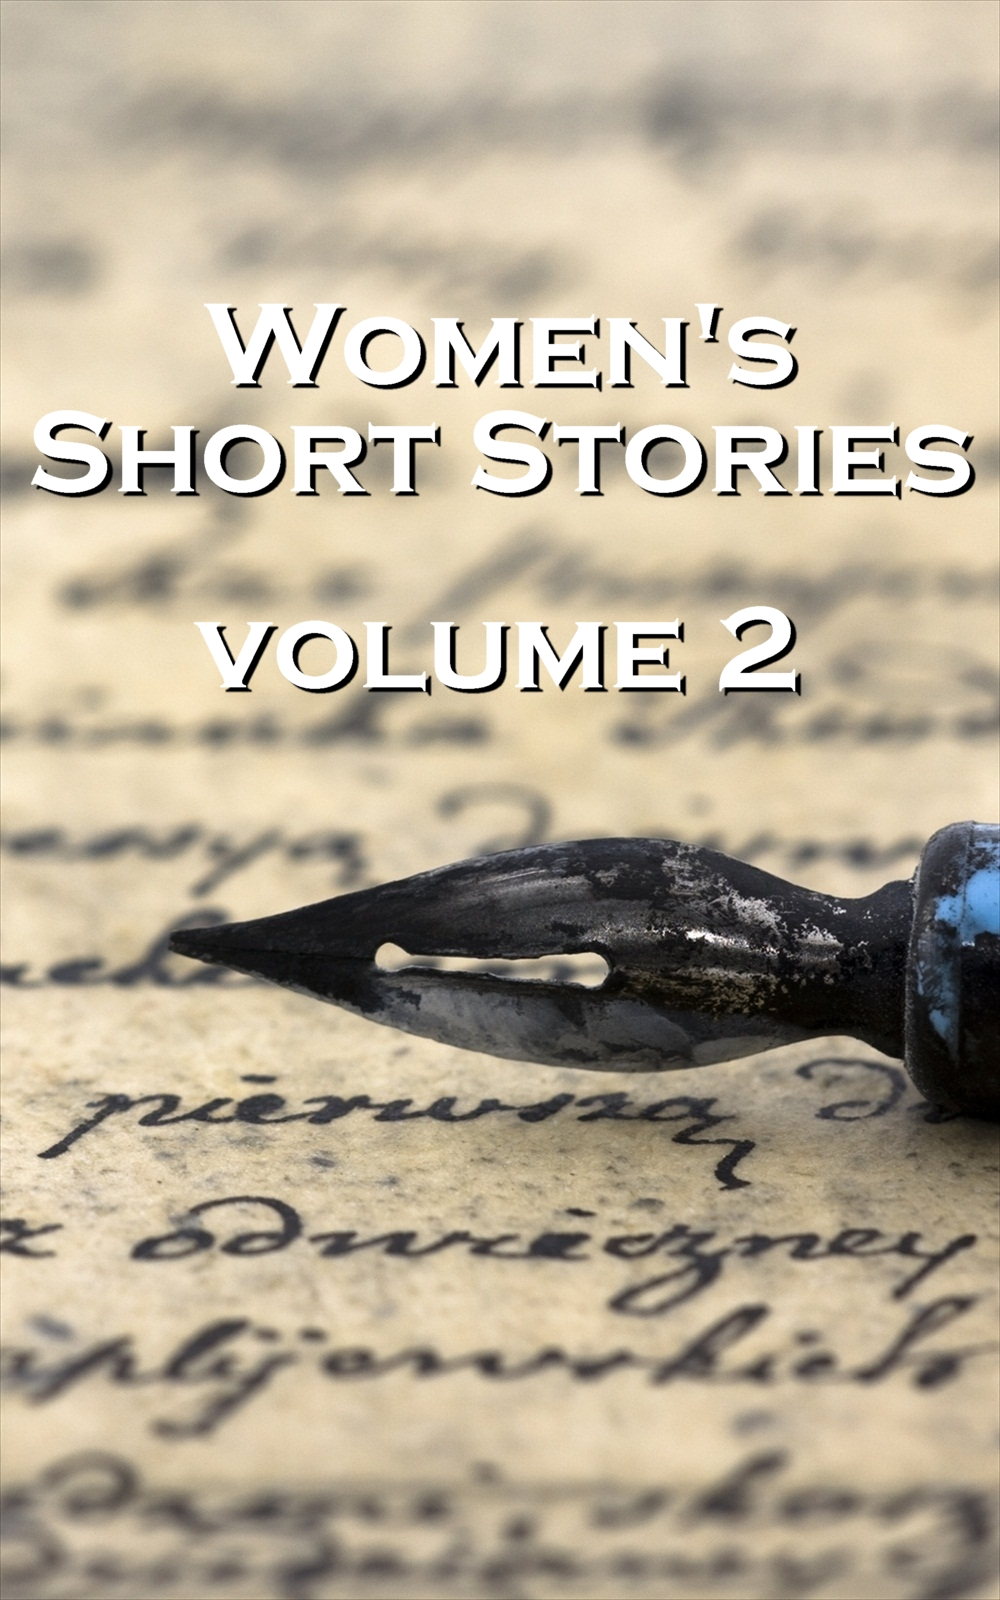 Womens Short Stories 2 By: Willa Cather, Virigina Woolf, Kate Chopin, Katherine Mansfield